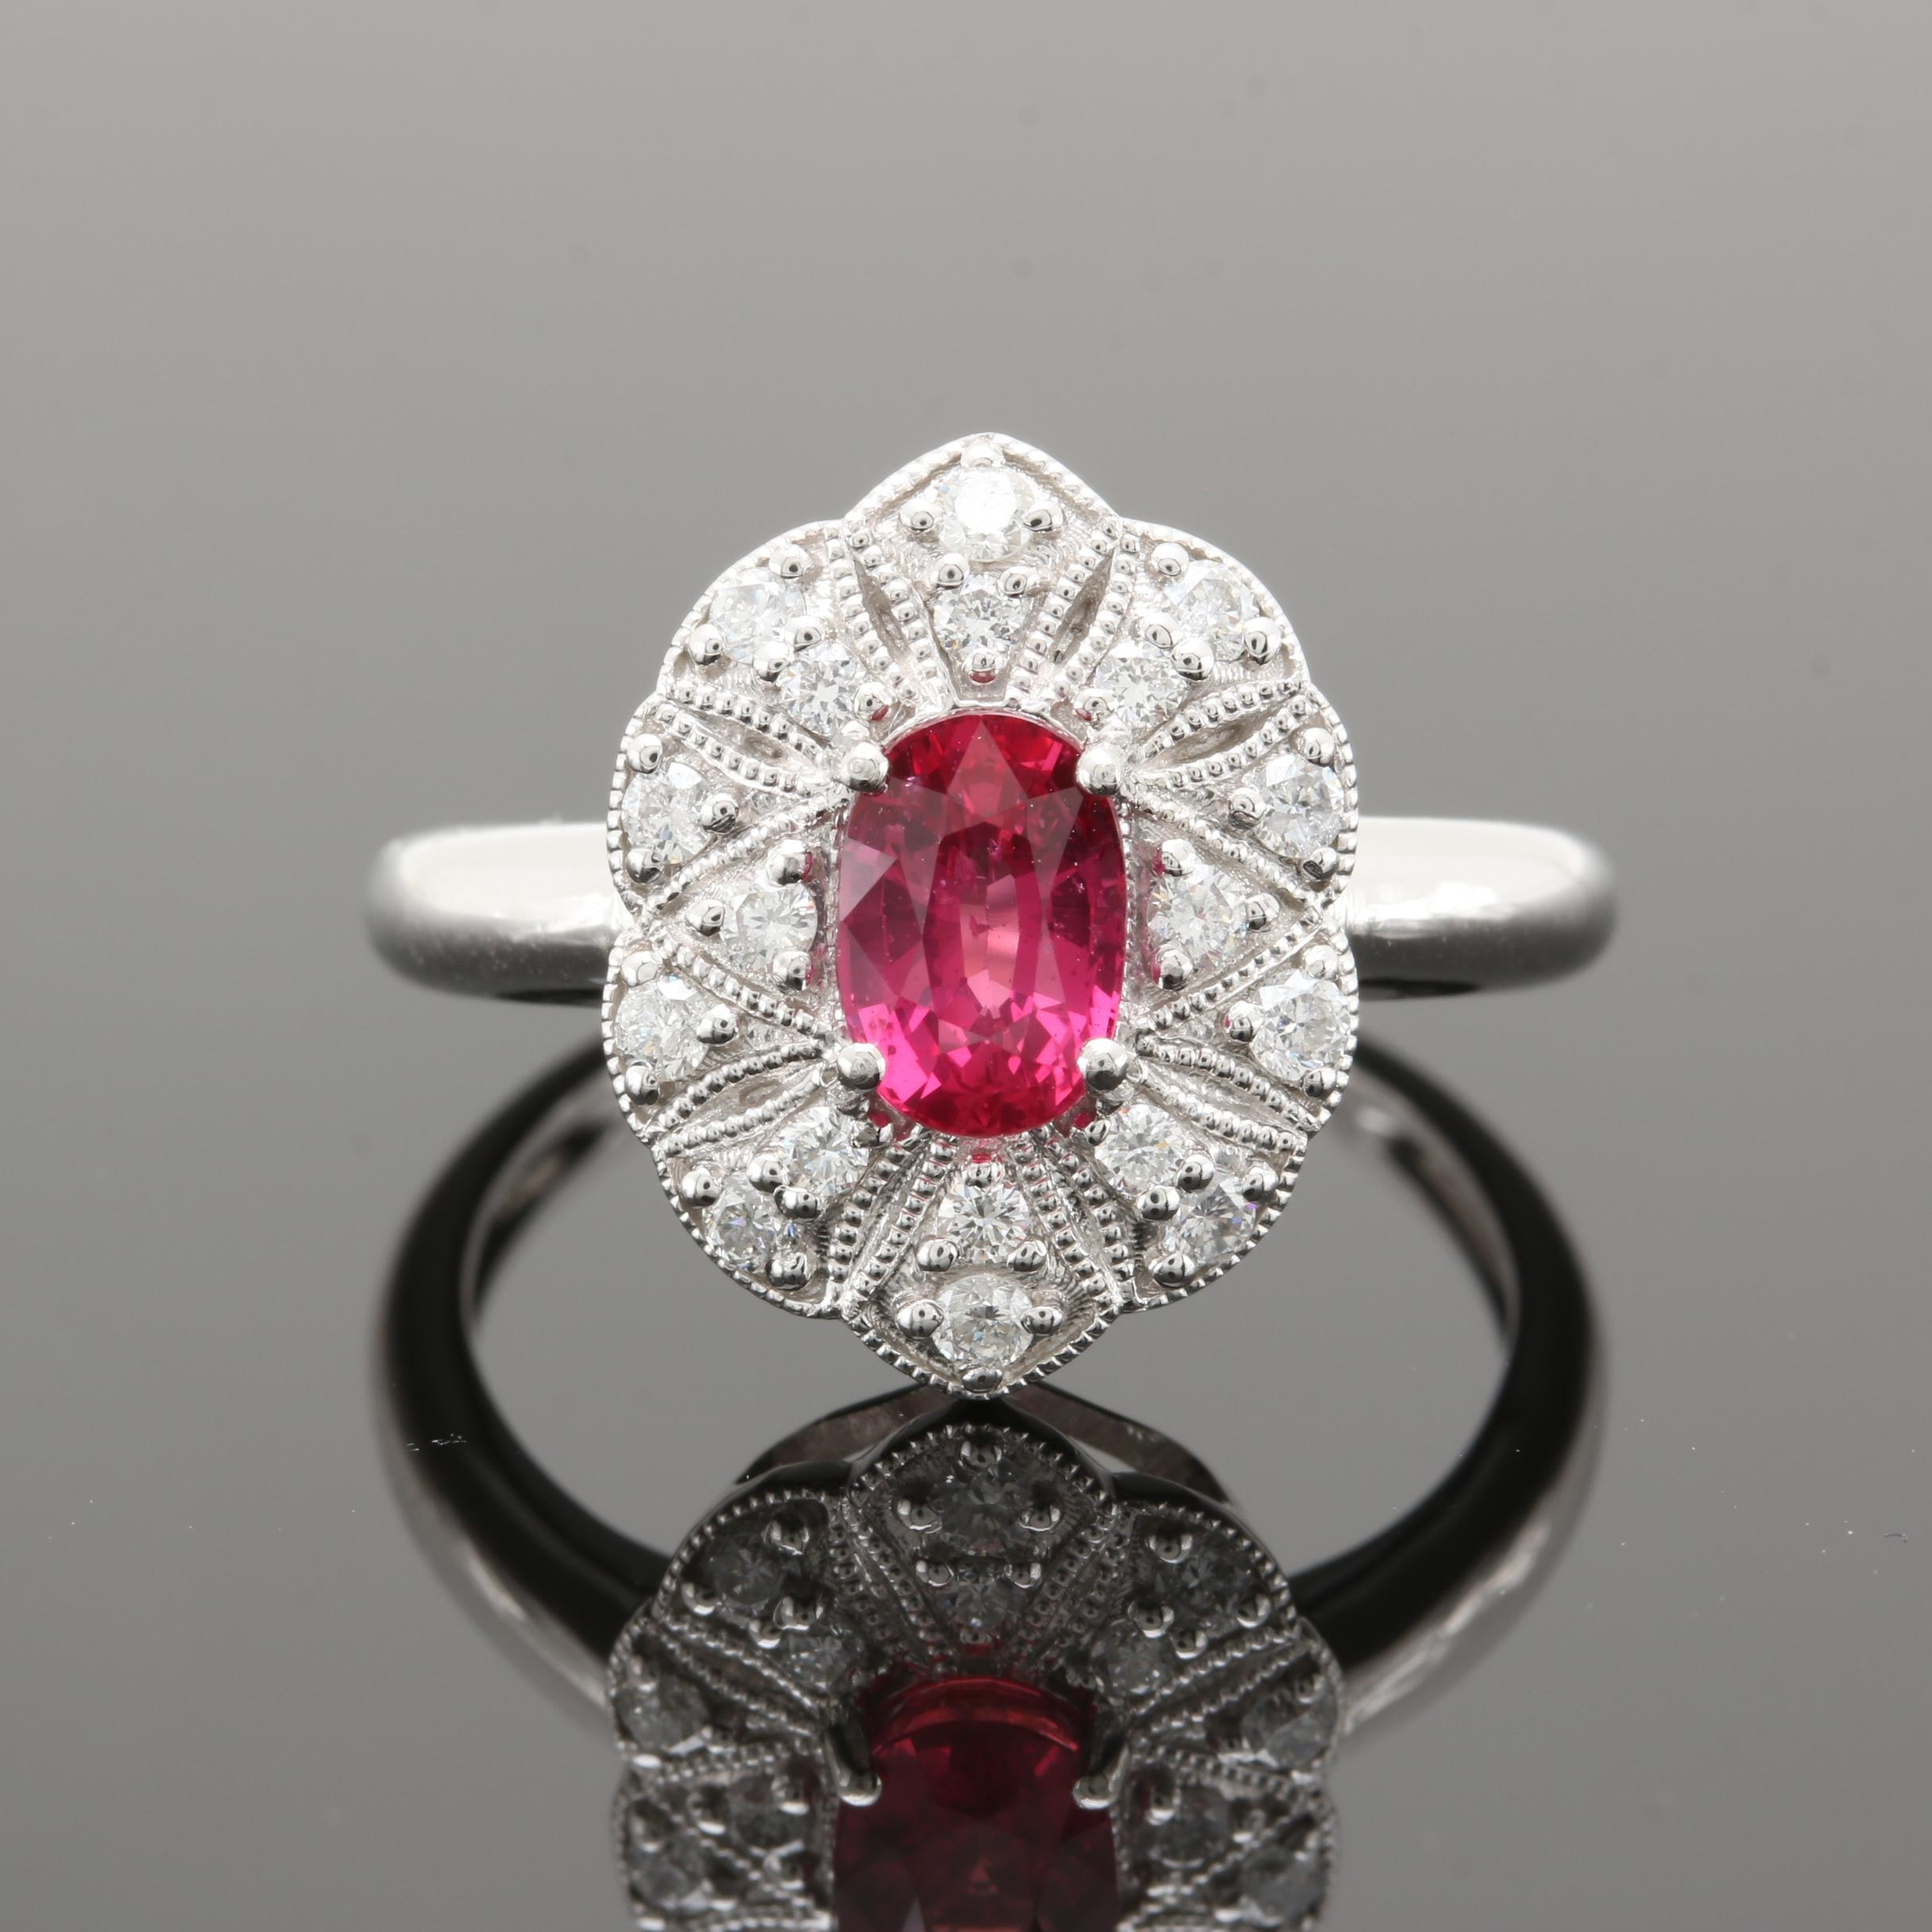 Platinum 1.20 CT Ruby and Diamond Ring With GIA Report